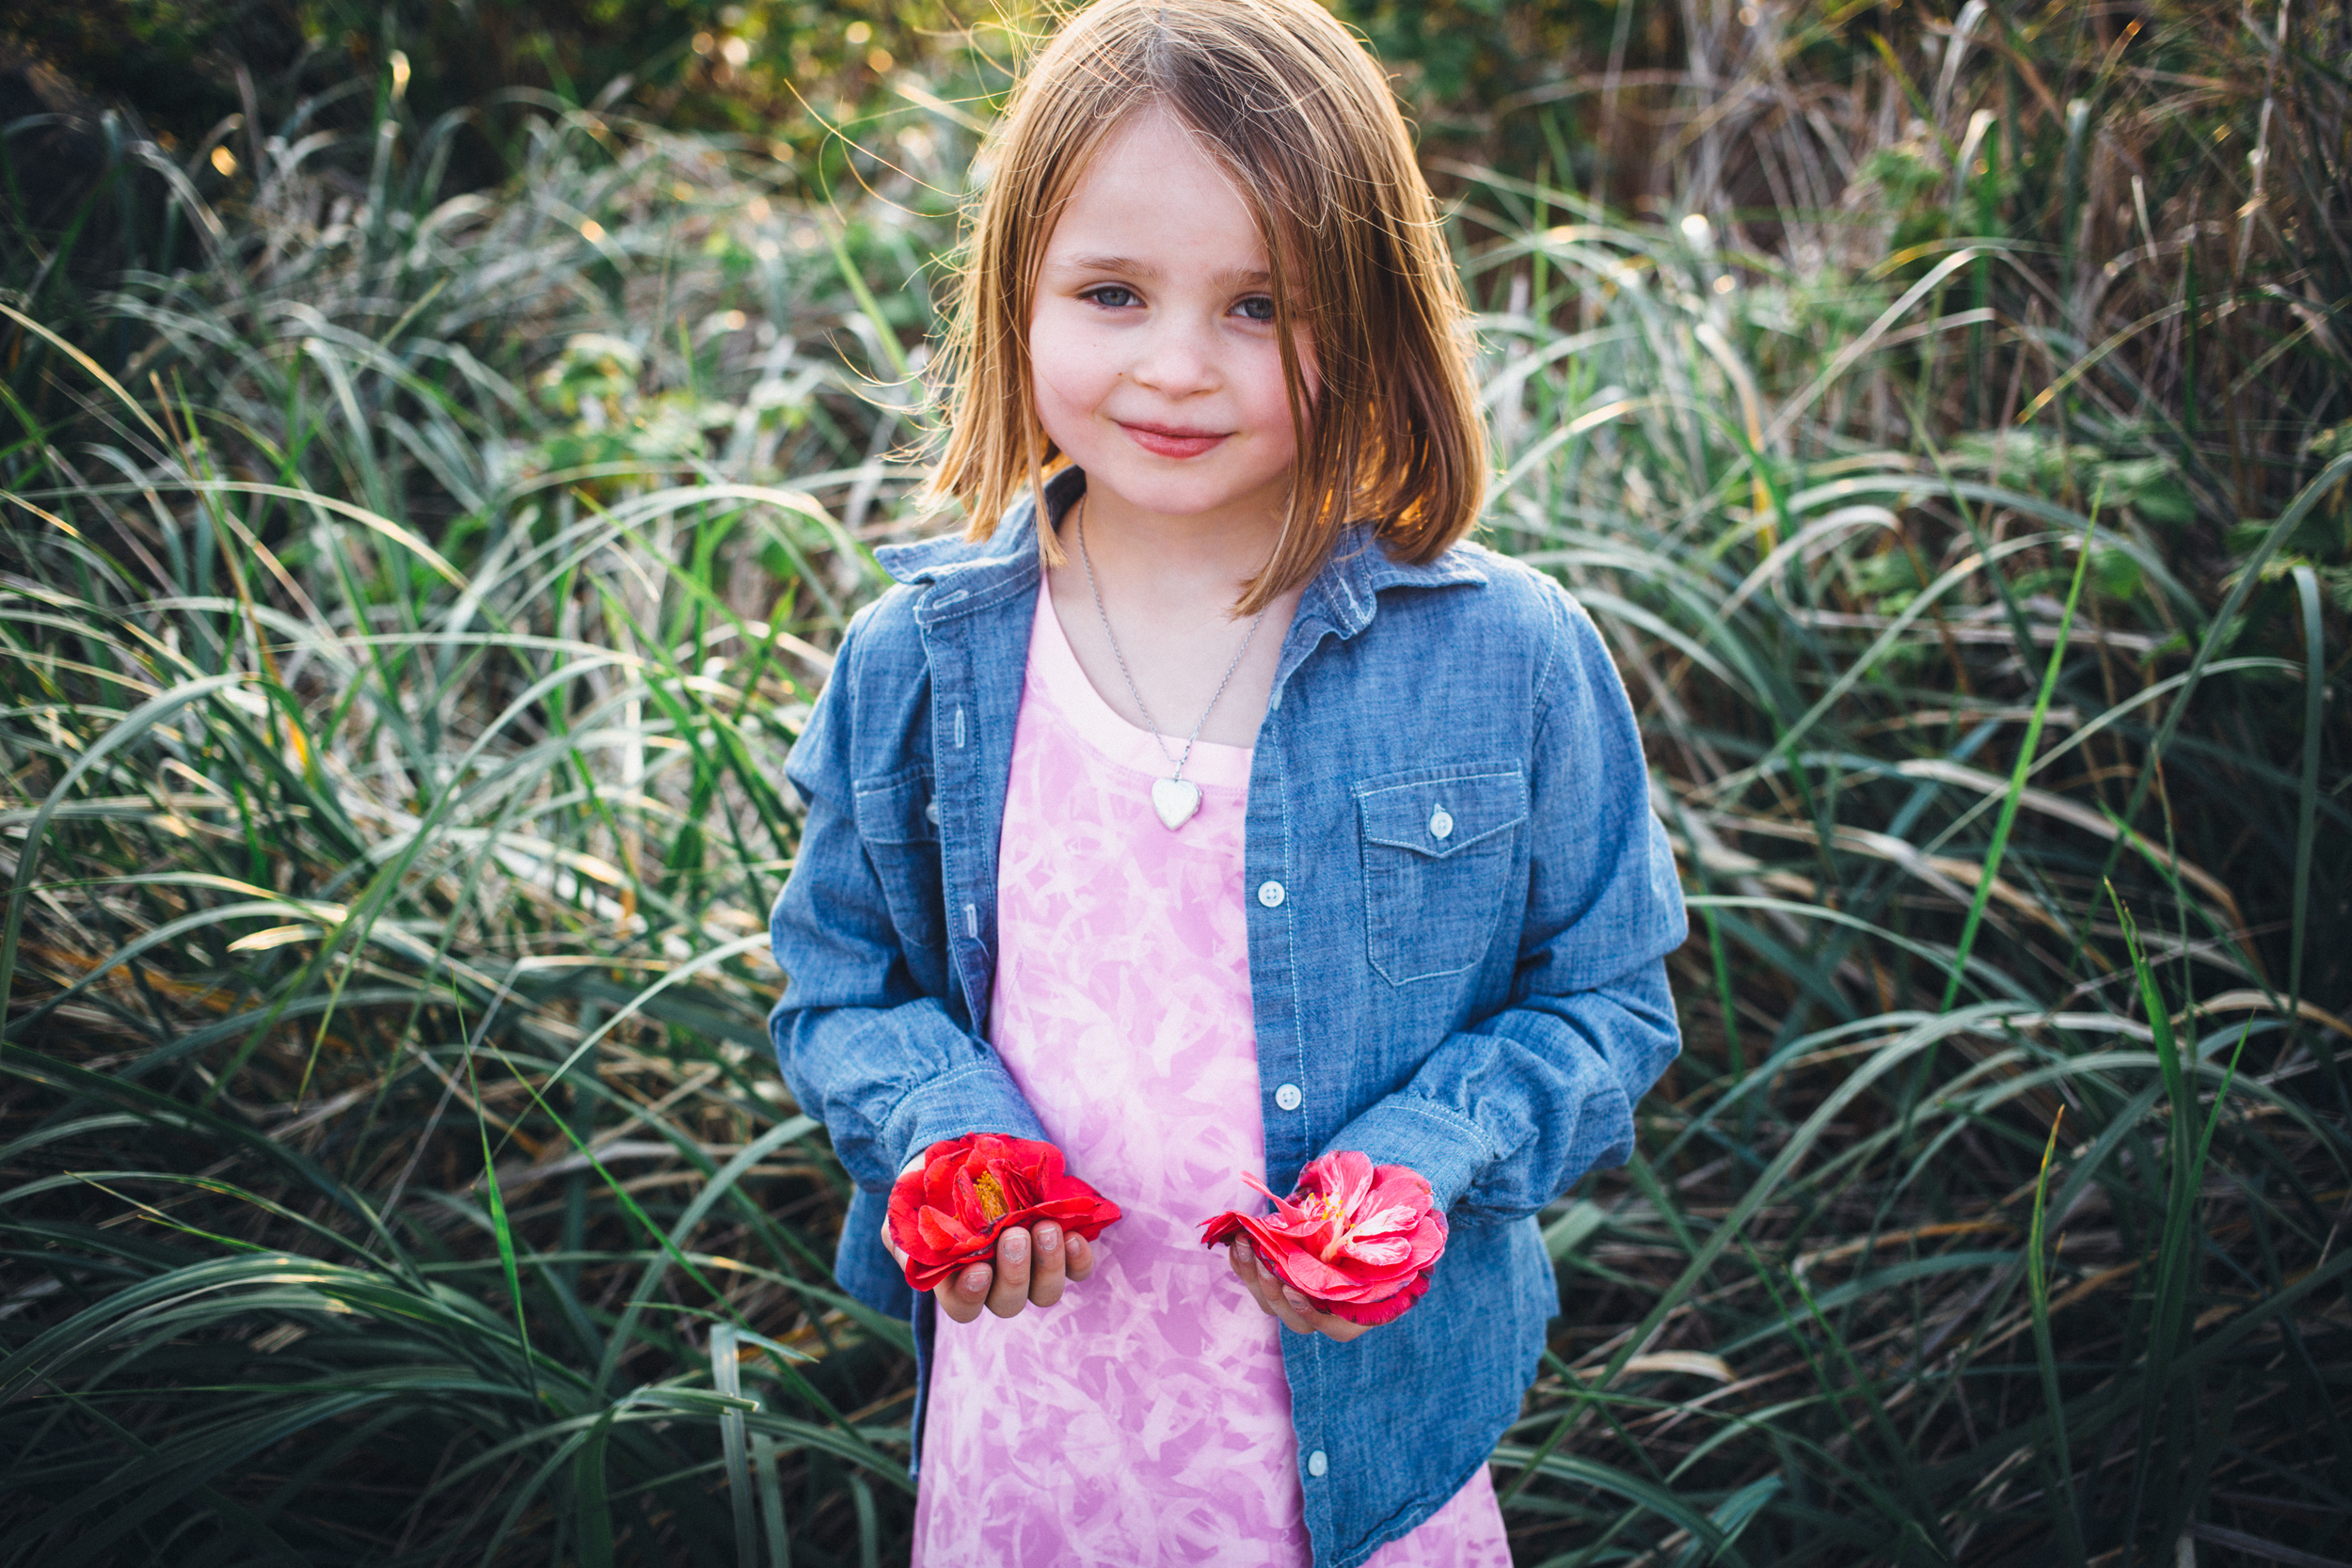 vancouver_photographer_child_family_DogwoodPhotography_laurenwatson-71.jpg